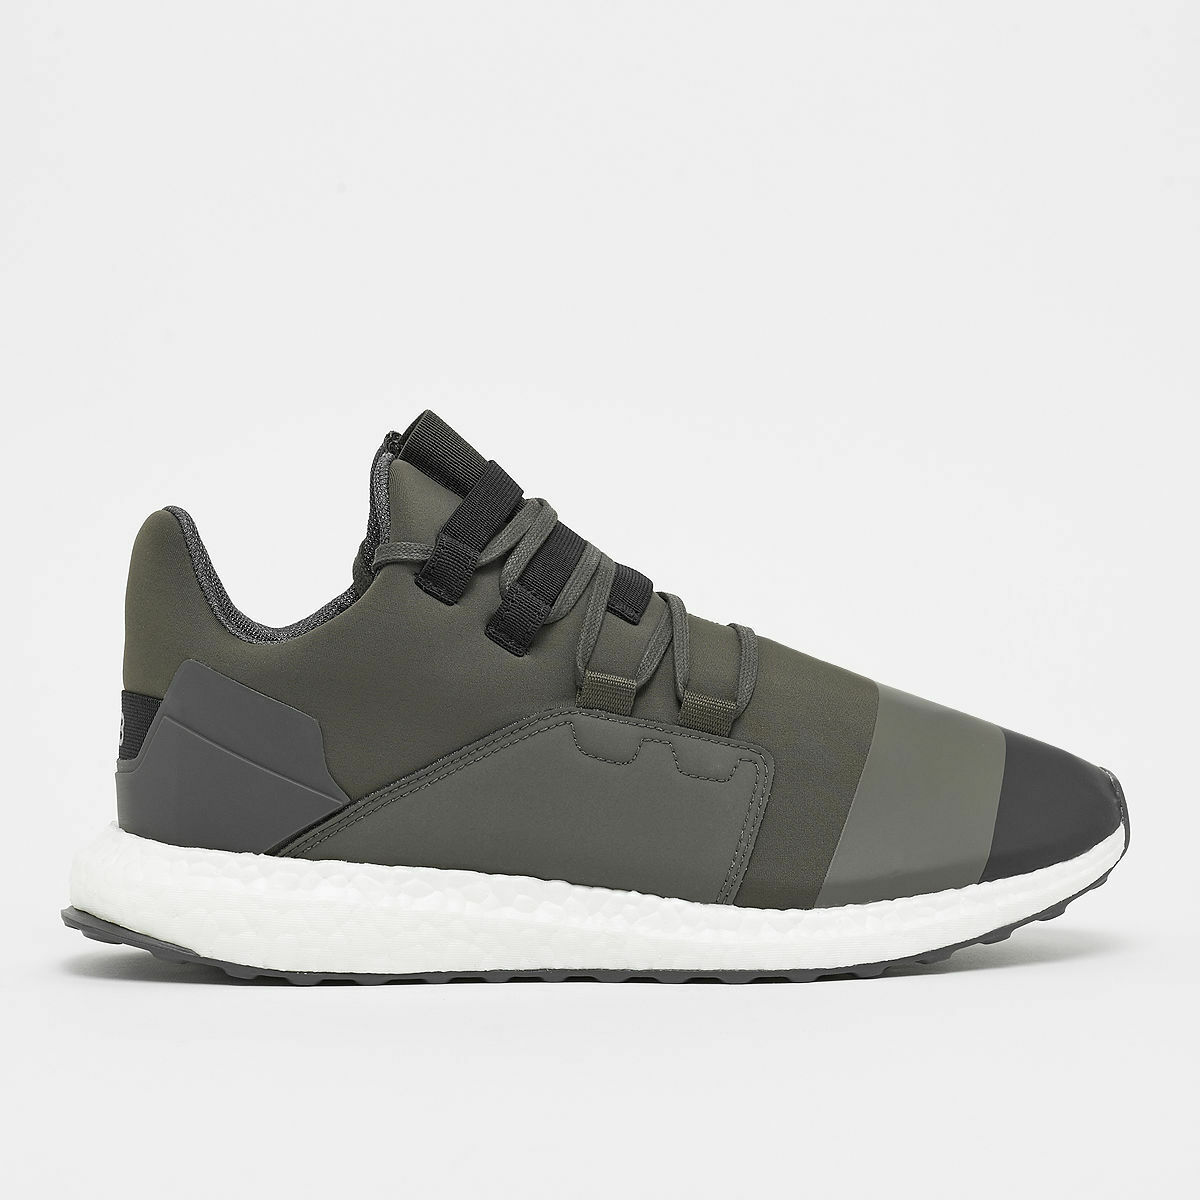 Y-3 Kozoko Low in Black Olive CG3161 Brand New In Box Free Shipping Comfortable